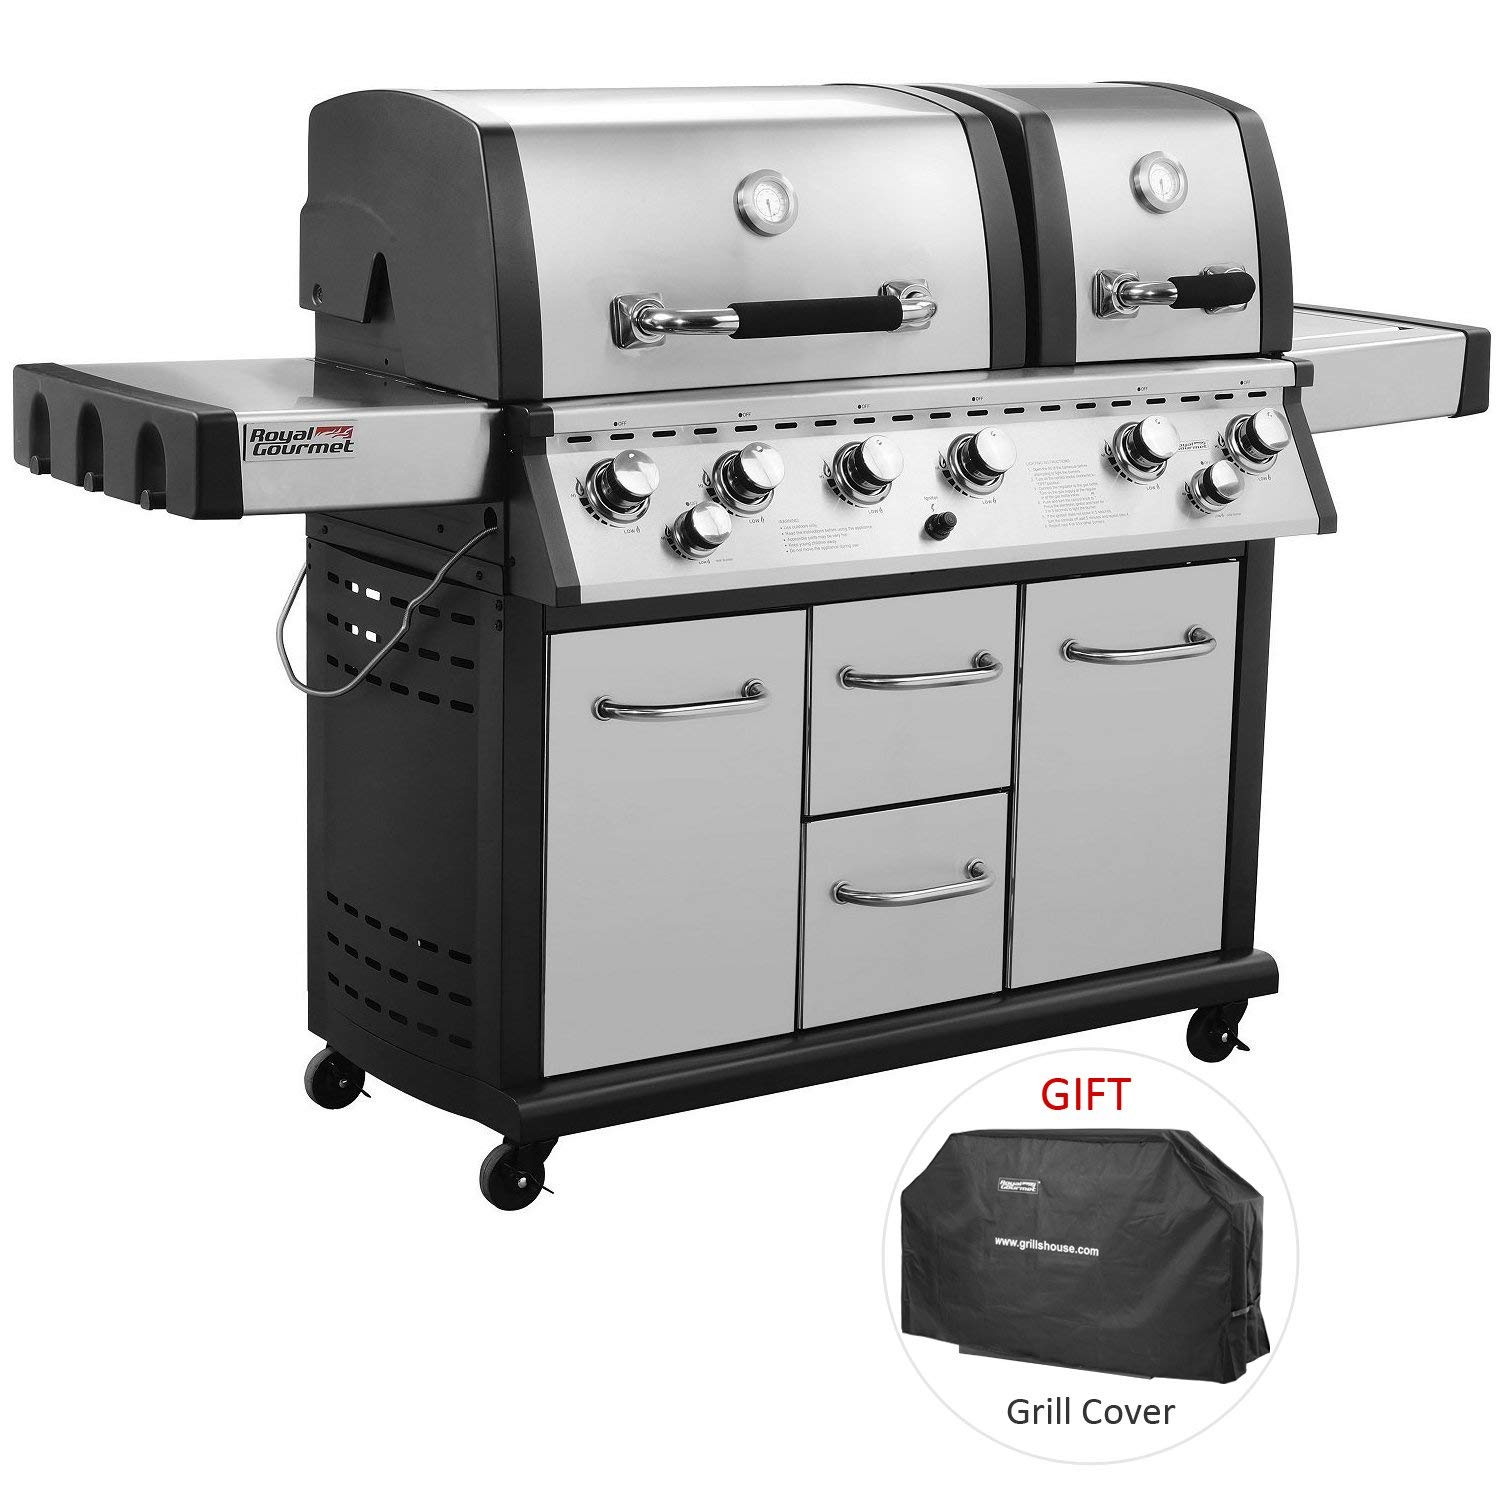 mirage propane grill